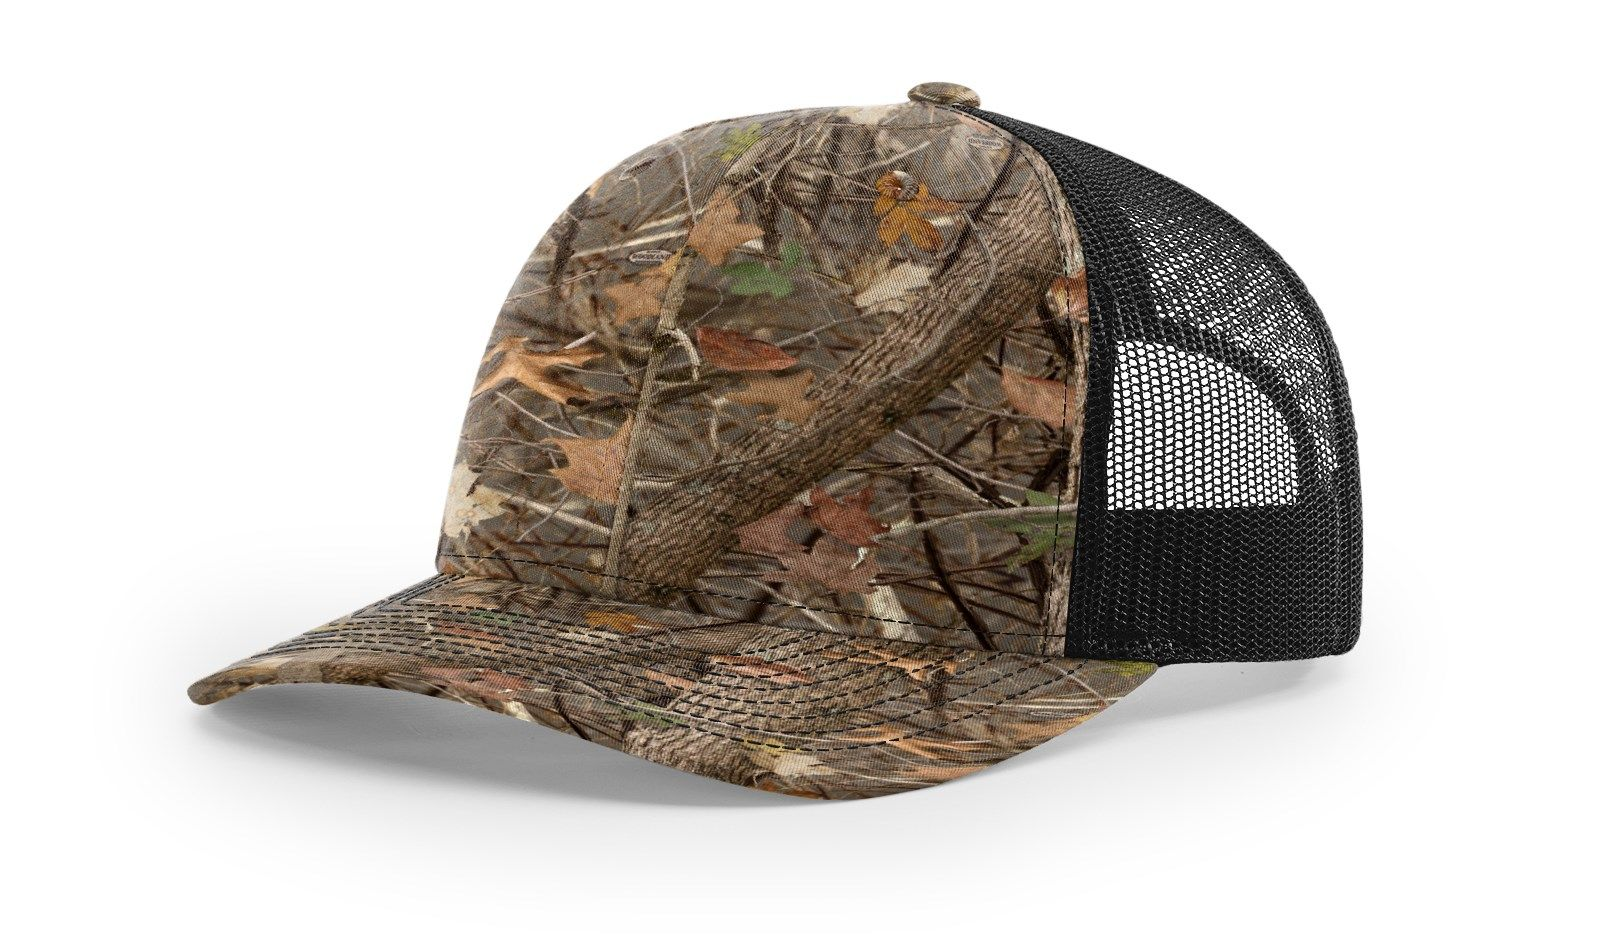 64705d8e PRINTED TRUCKER - CAMO - PRODUCT CATEGORIES - Headwear | My Style ...